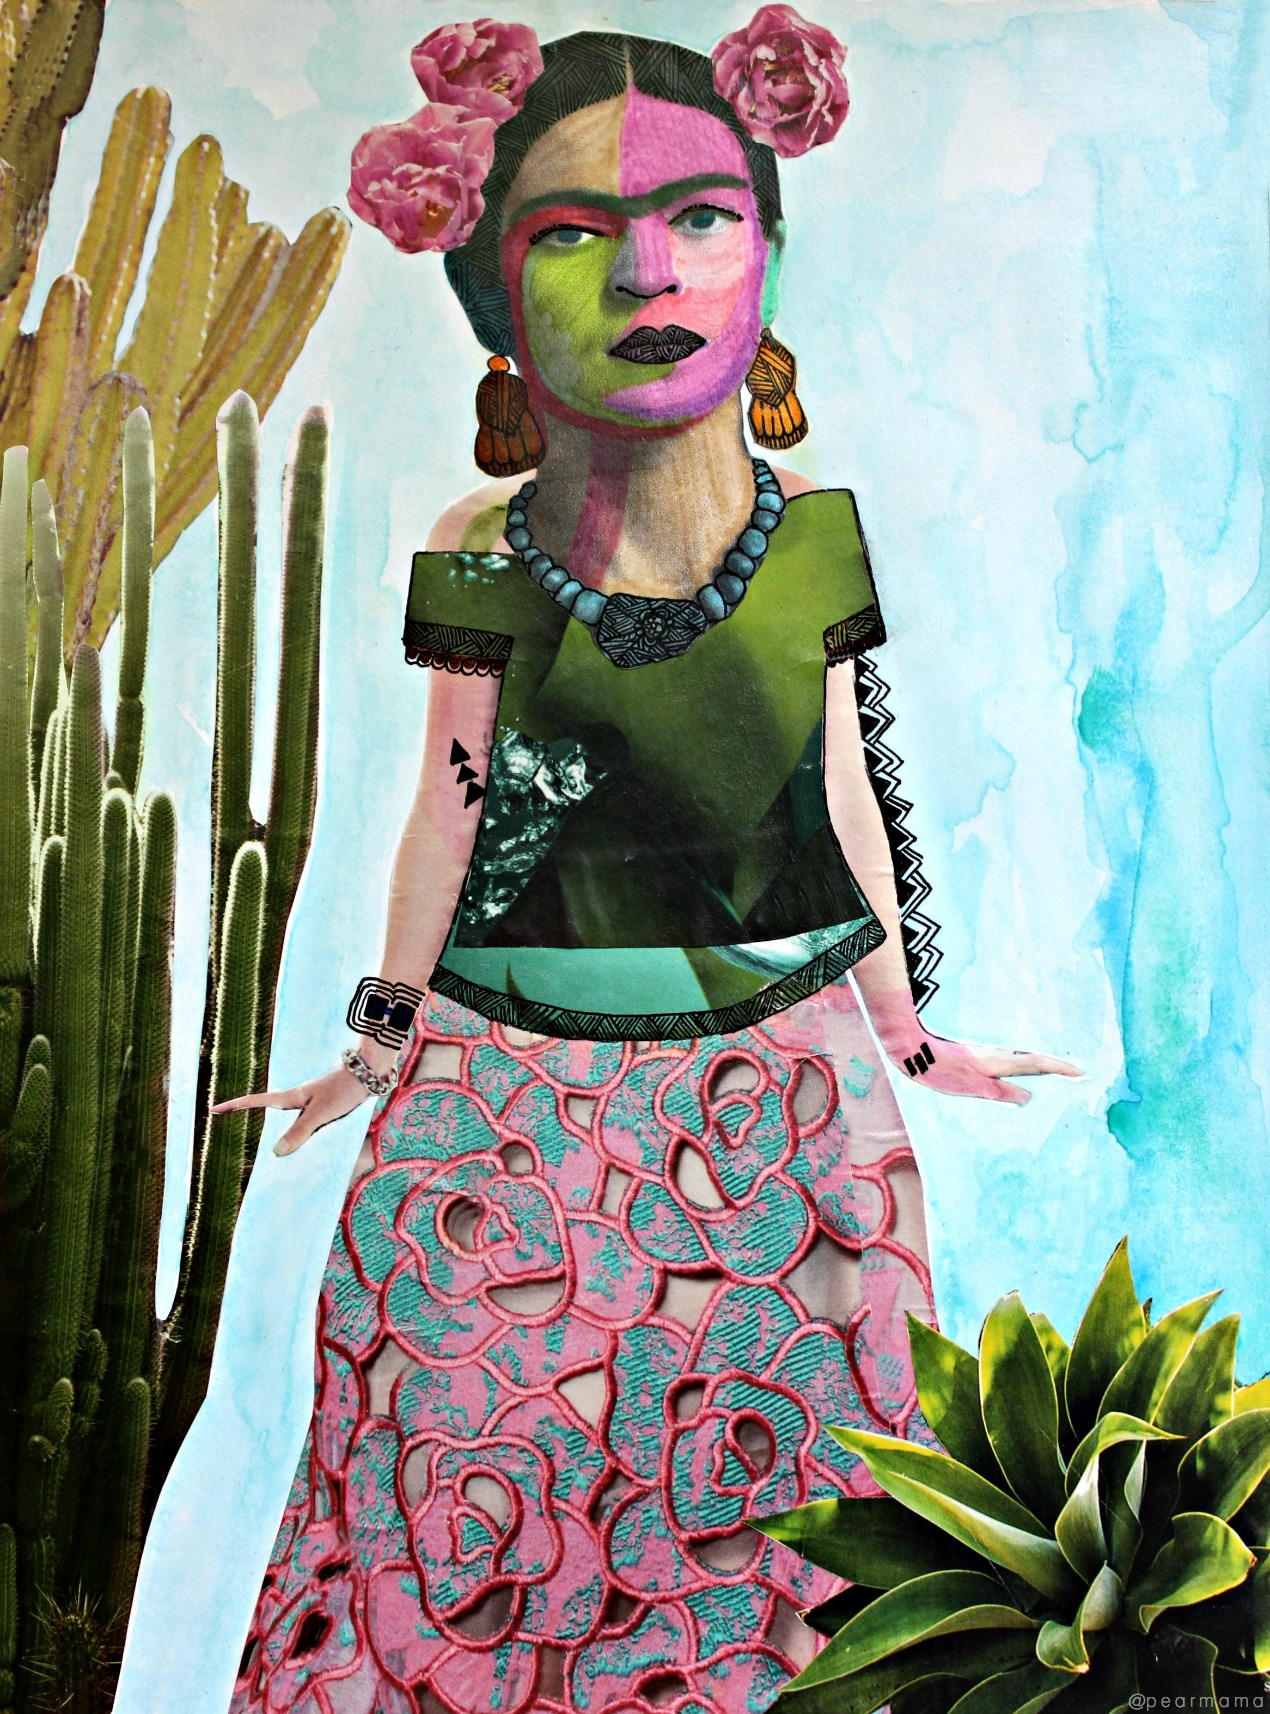 Unlike the male artists of the day, Frida Kahlo didn't need any fancy landscapes or ballerinas as her muse -- she had herself. And it was enough.